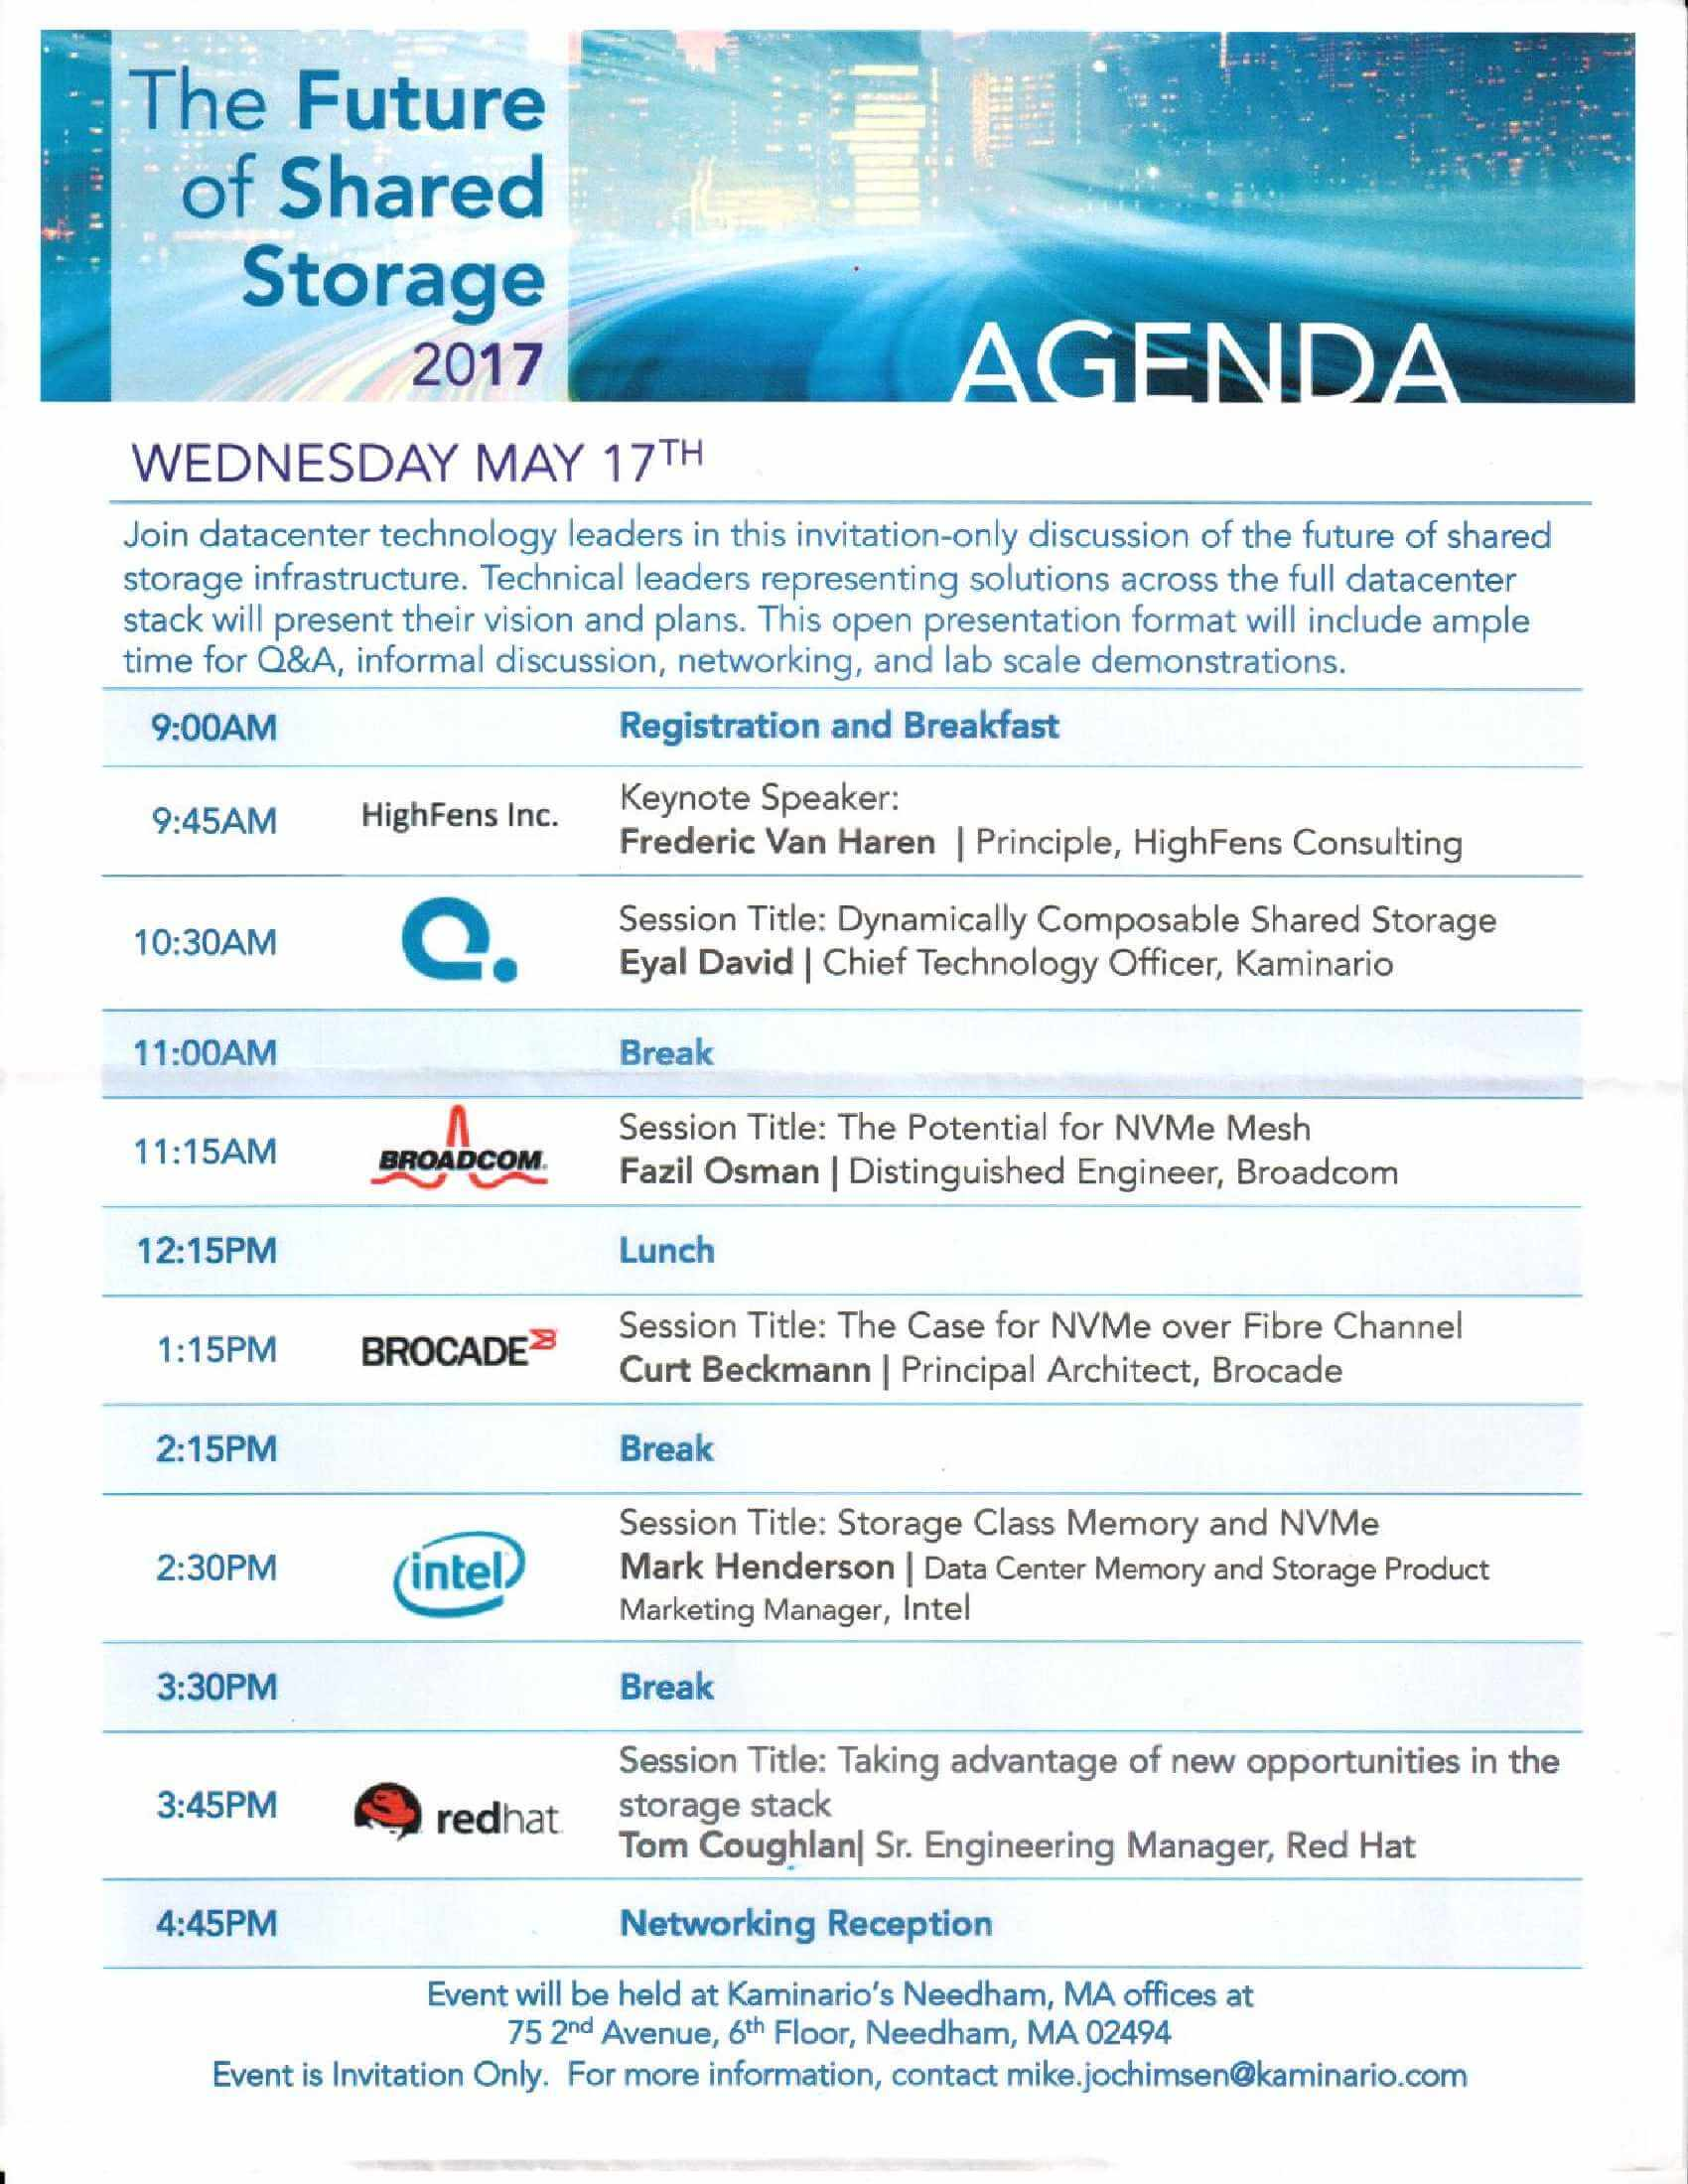 HighFens Inc - Agenda - The Future Of Cloud-Scale Application Infrastructure